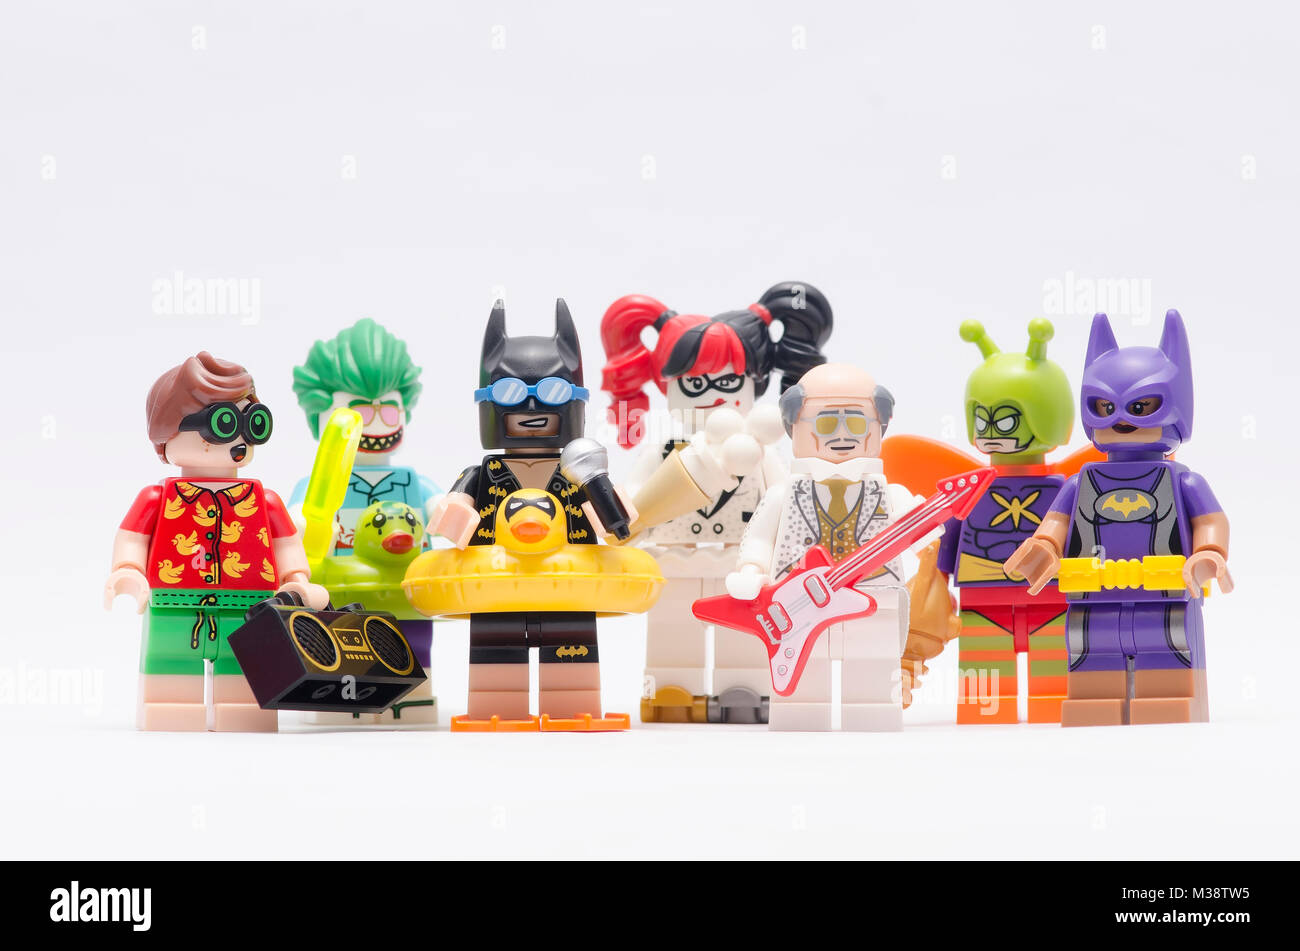 Lego Batman And Others Character Isolated On White Background